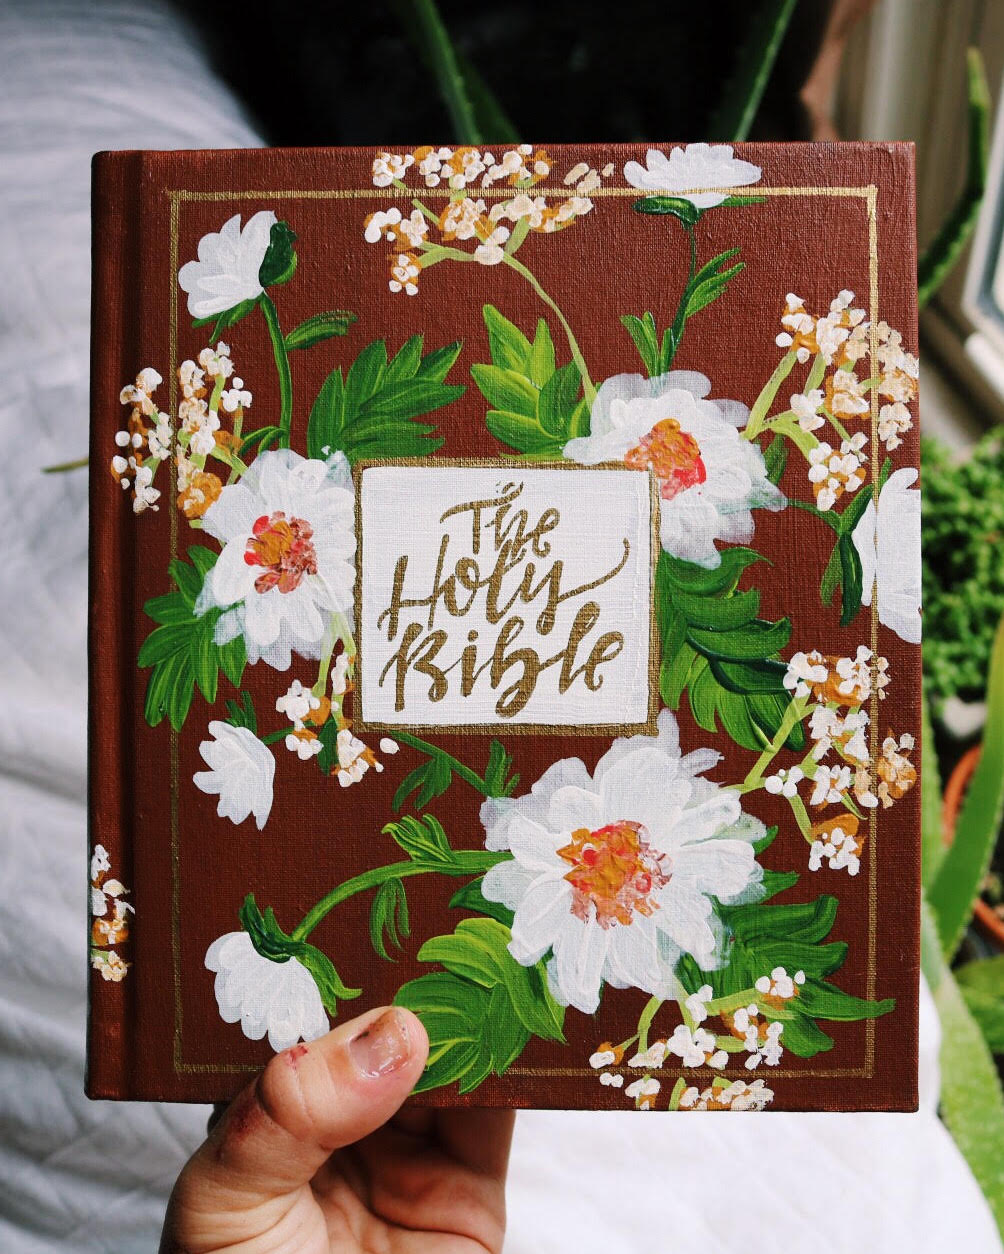 Another beautiful Bible hand-painted by Katie of Hosanna Revival!